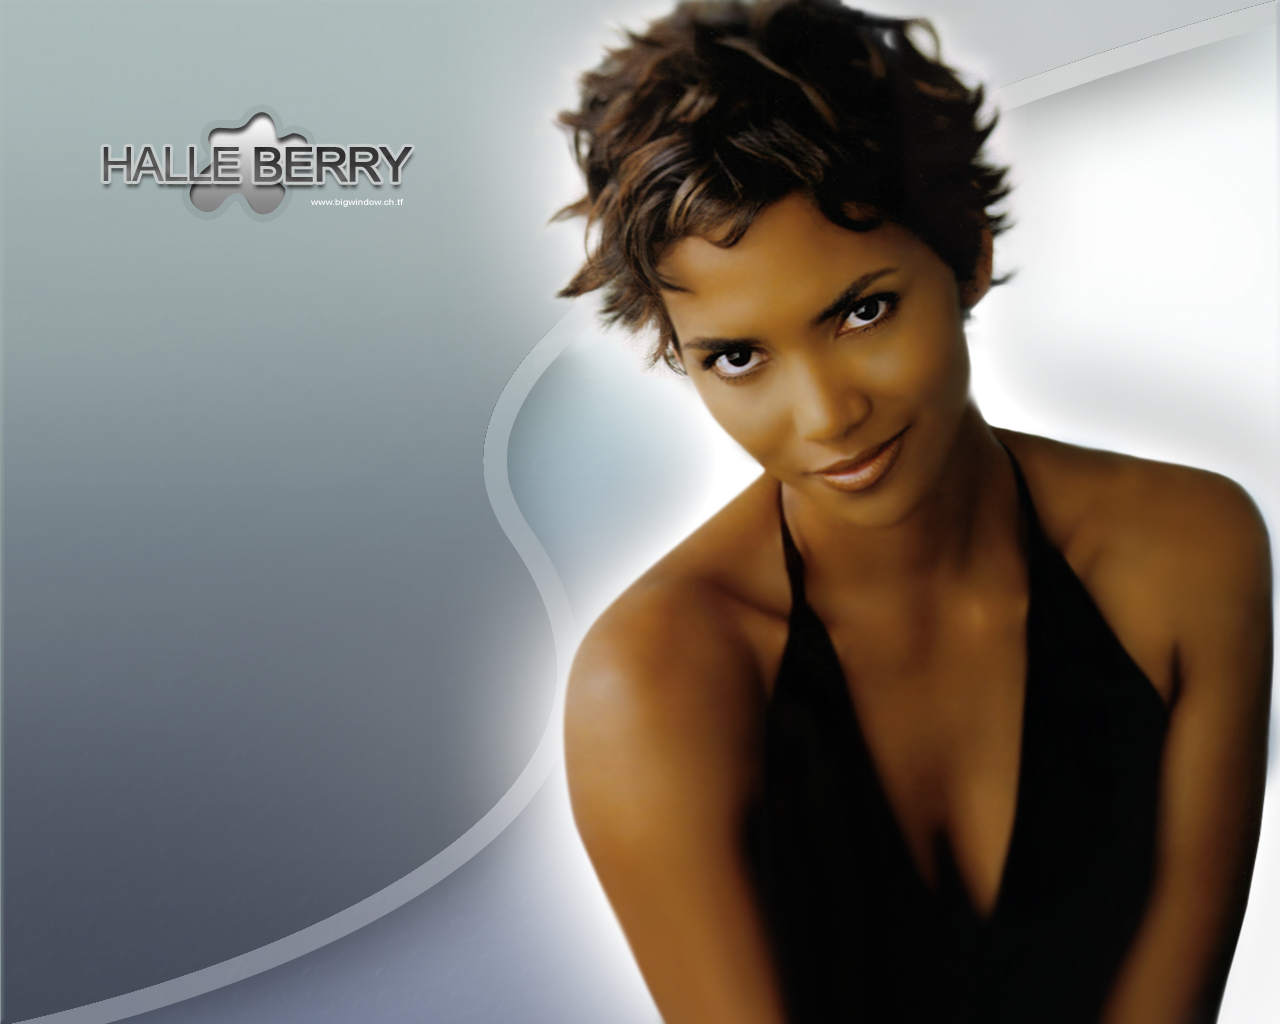 Cool Wallpapers Halle Berry